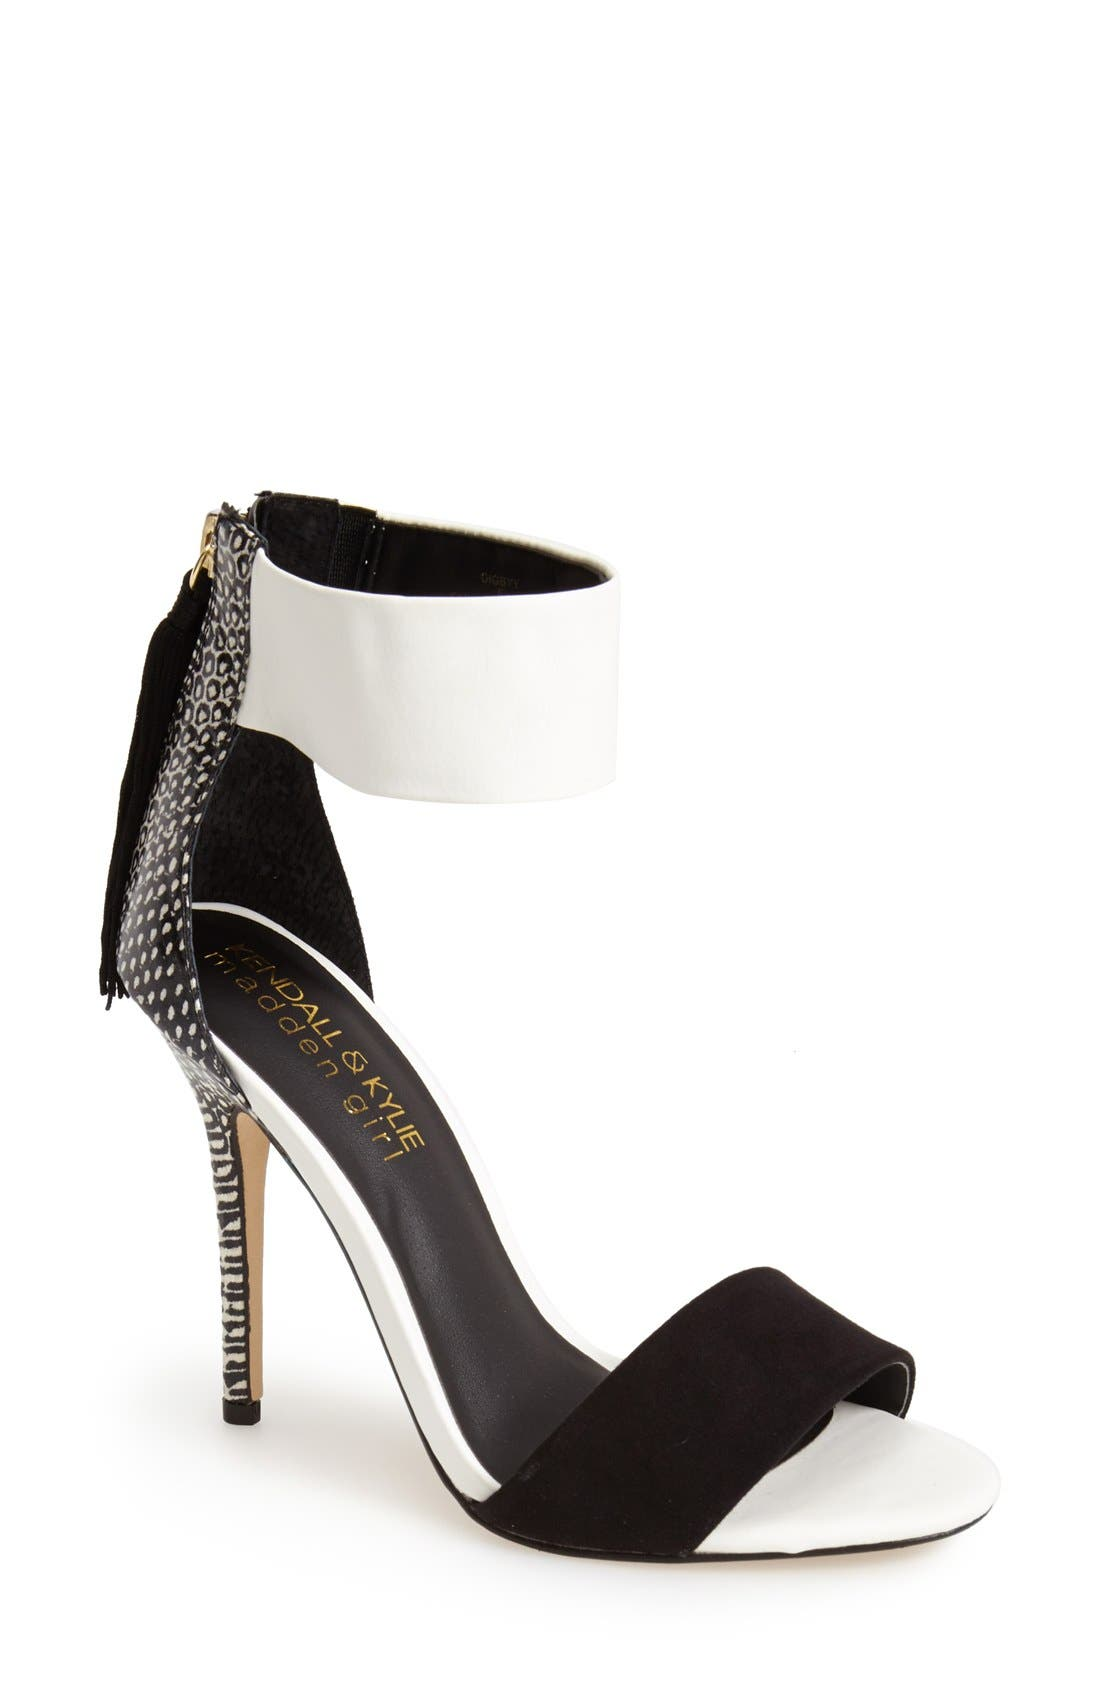 Alternate Image 1 Selected - KENDALL + KYLIE Madden Girl 'Digbyy' Ankle Cuff Sandal (Women)